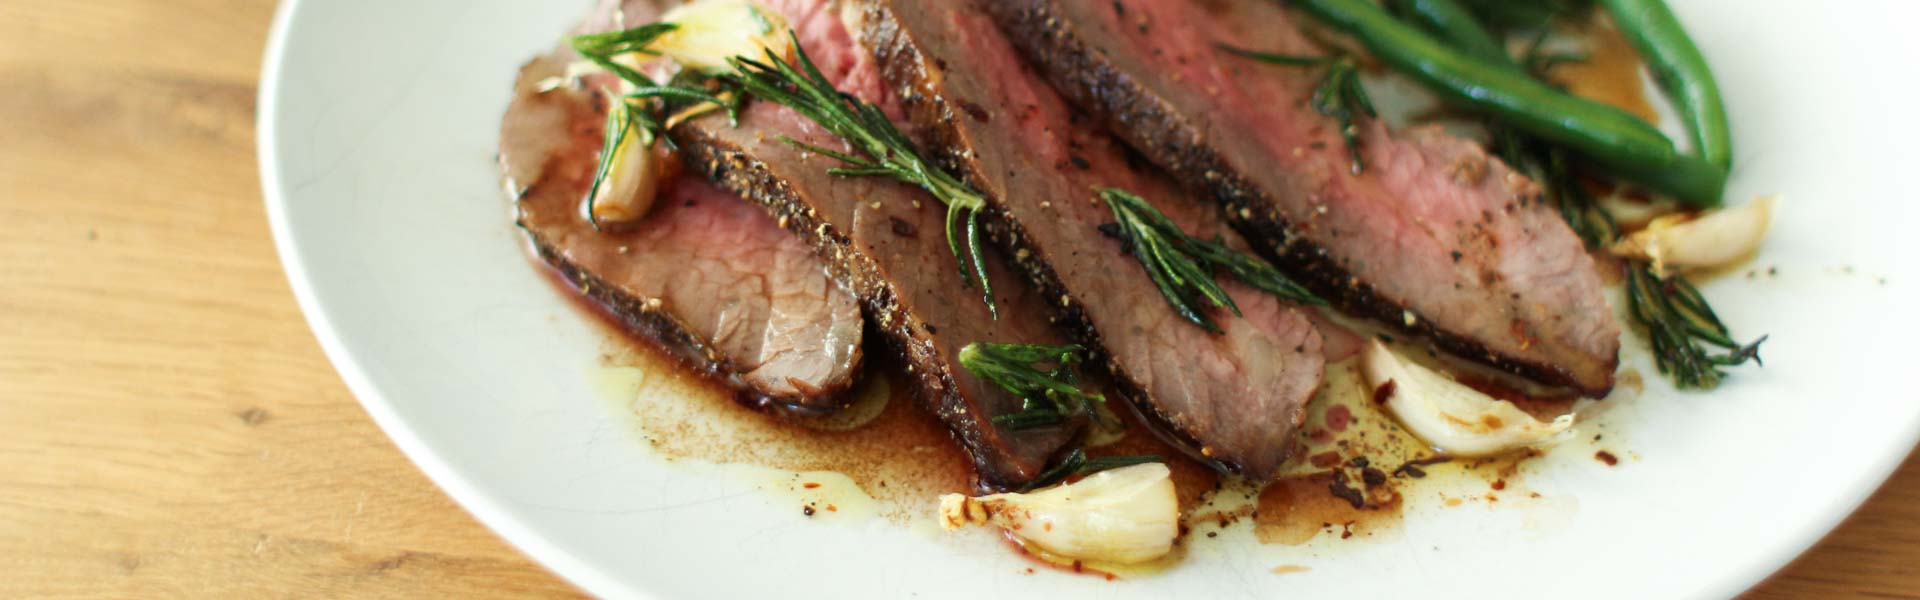 <p>The combination of using a simple marinade made with Dried Plum Puree and roasting at a high oven temperature gives tri-tip a rich, caramelized exterior. The end result is perfect for carving and serving hot, but the meat is also excellent for steak sandwiches topped with caramelized onions.</p>